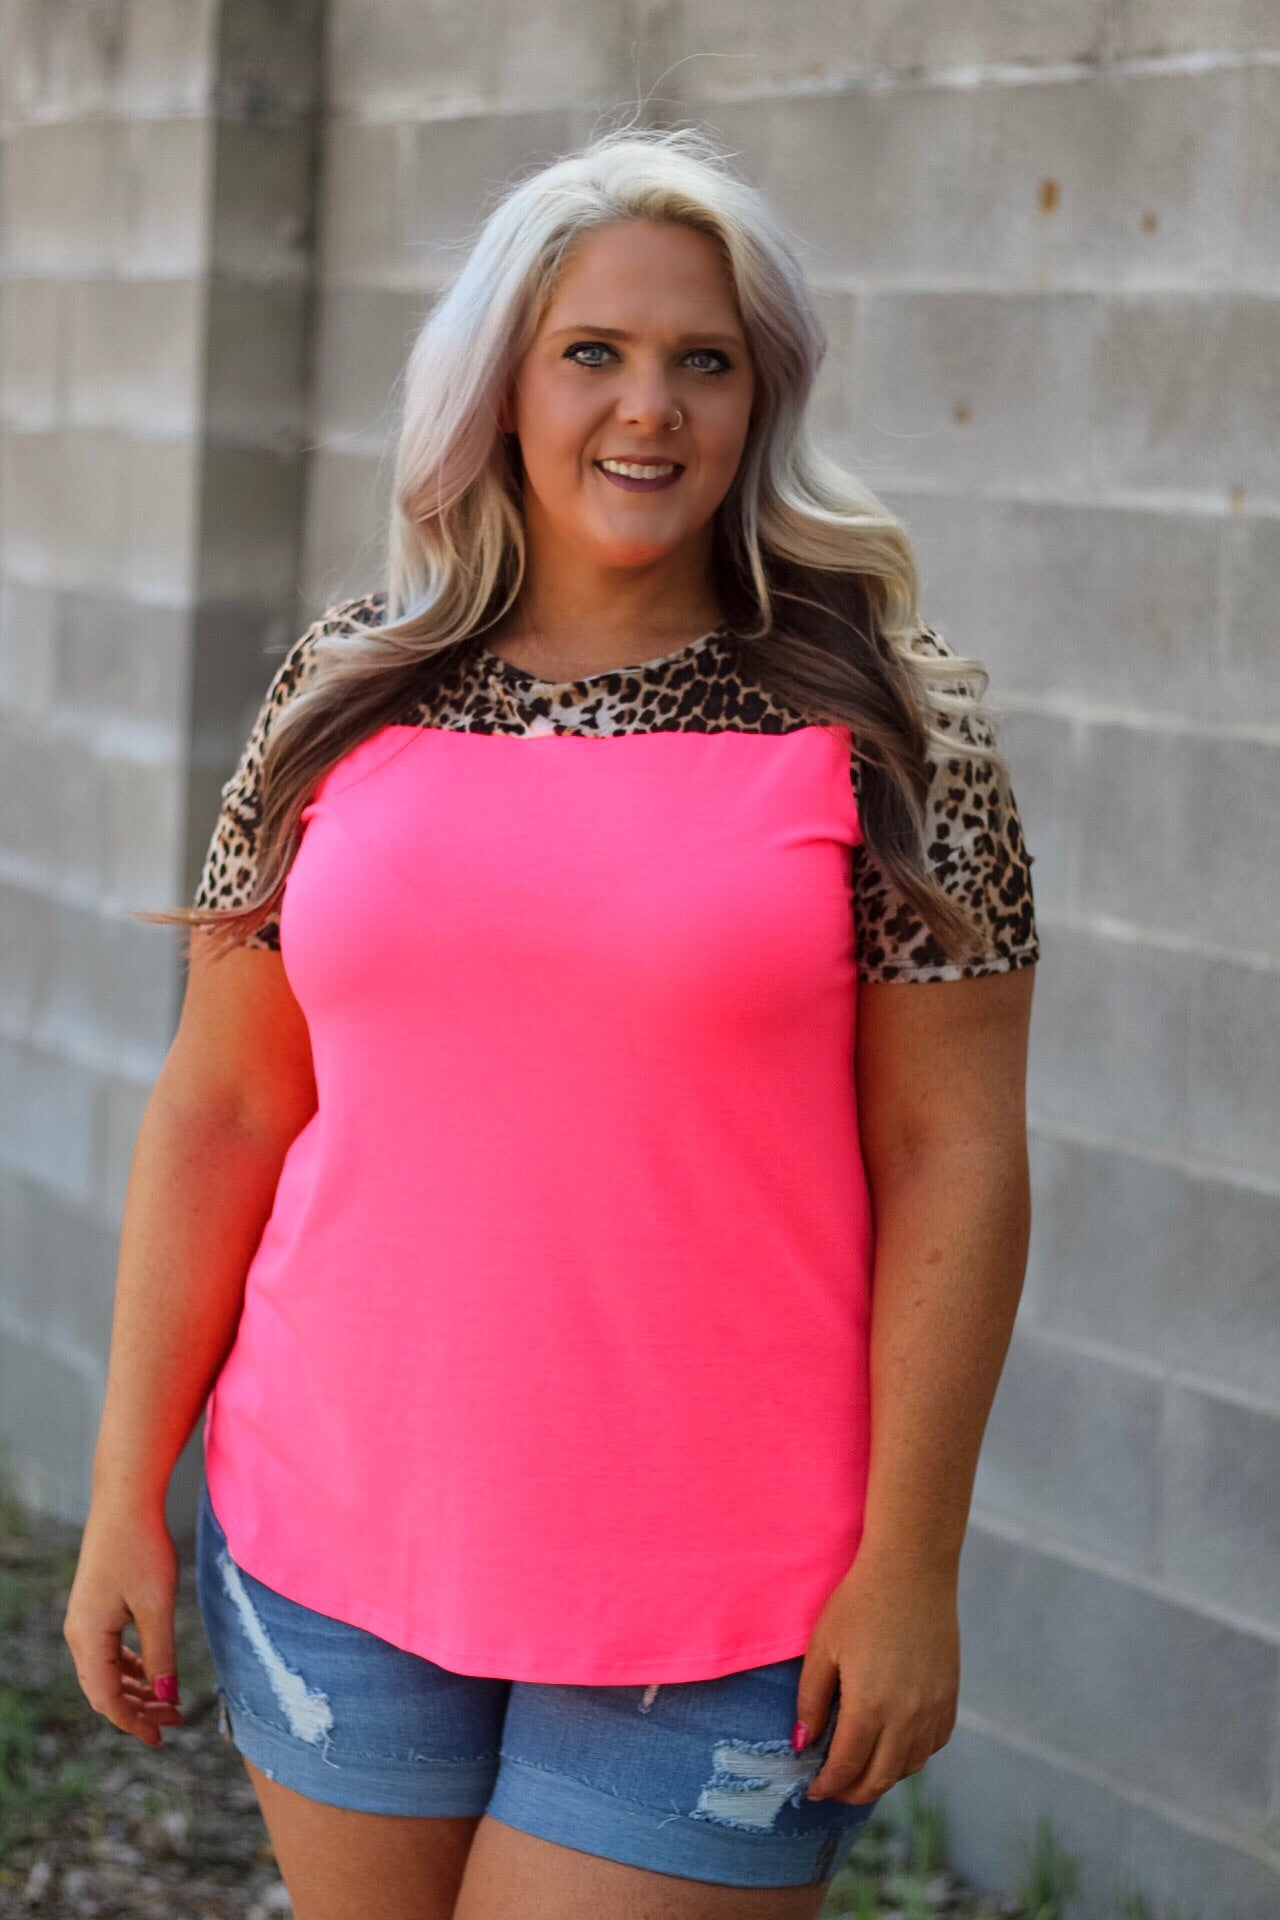 Landon Hot Pink and Leopard Top